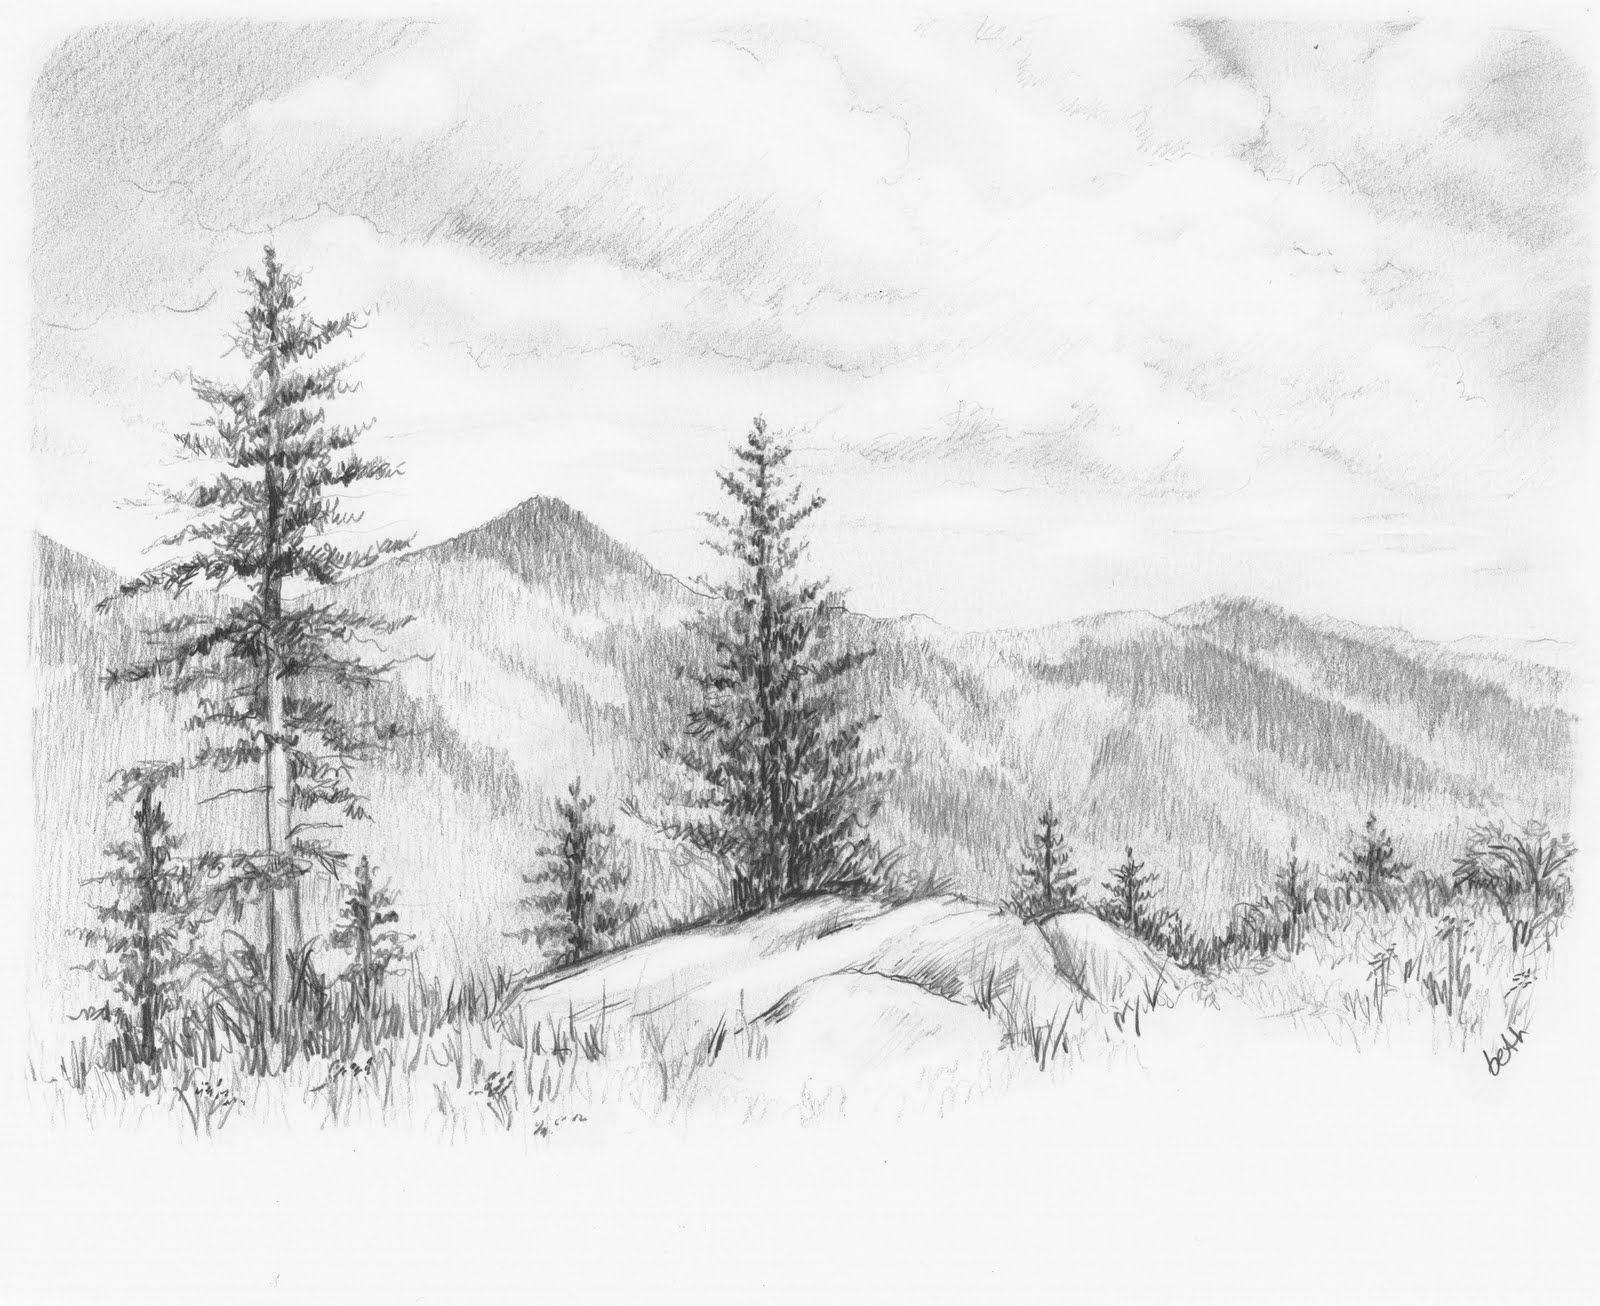 Landscape drawings in pencil hd pencil drawing pictures of nature download hq pencil drawing